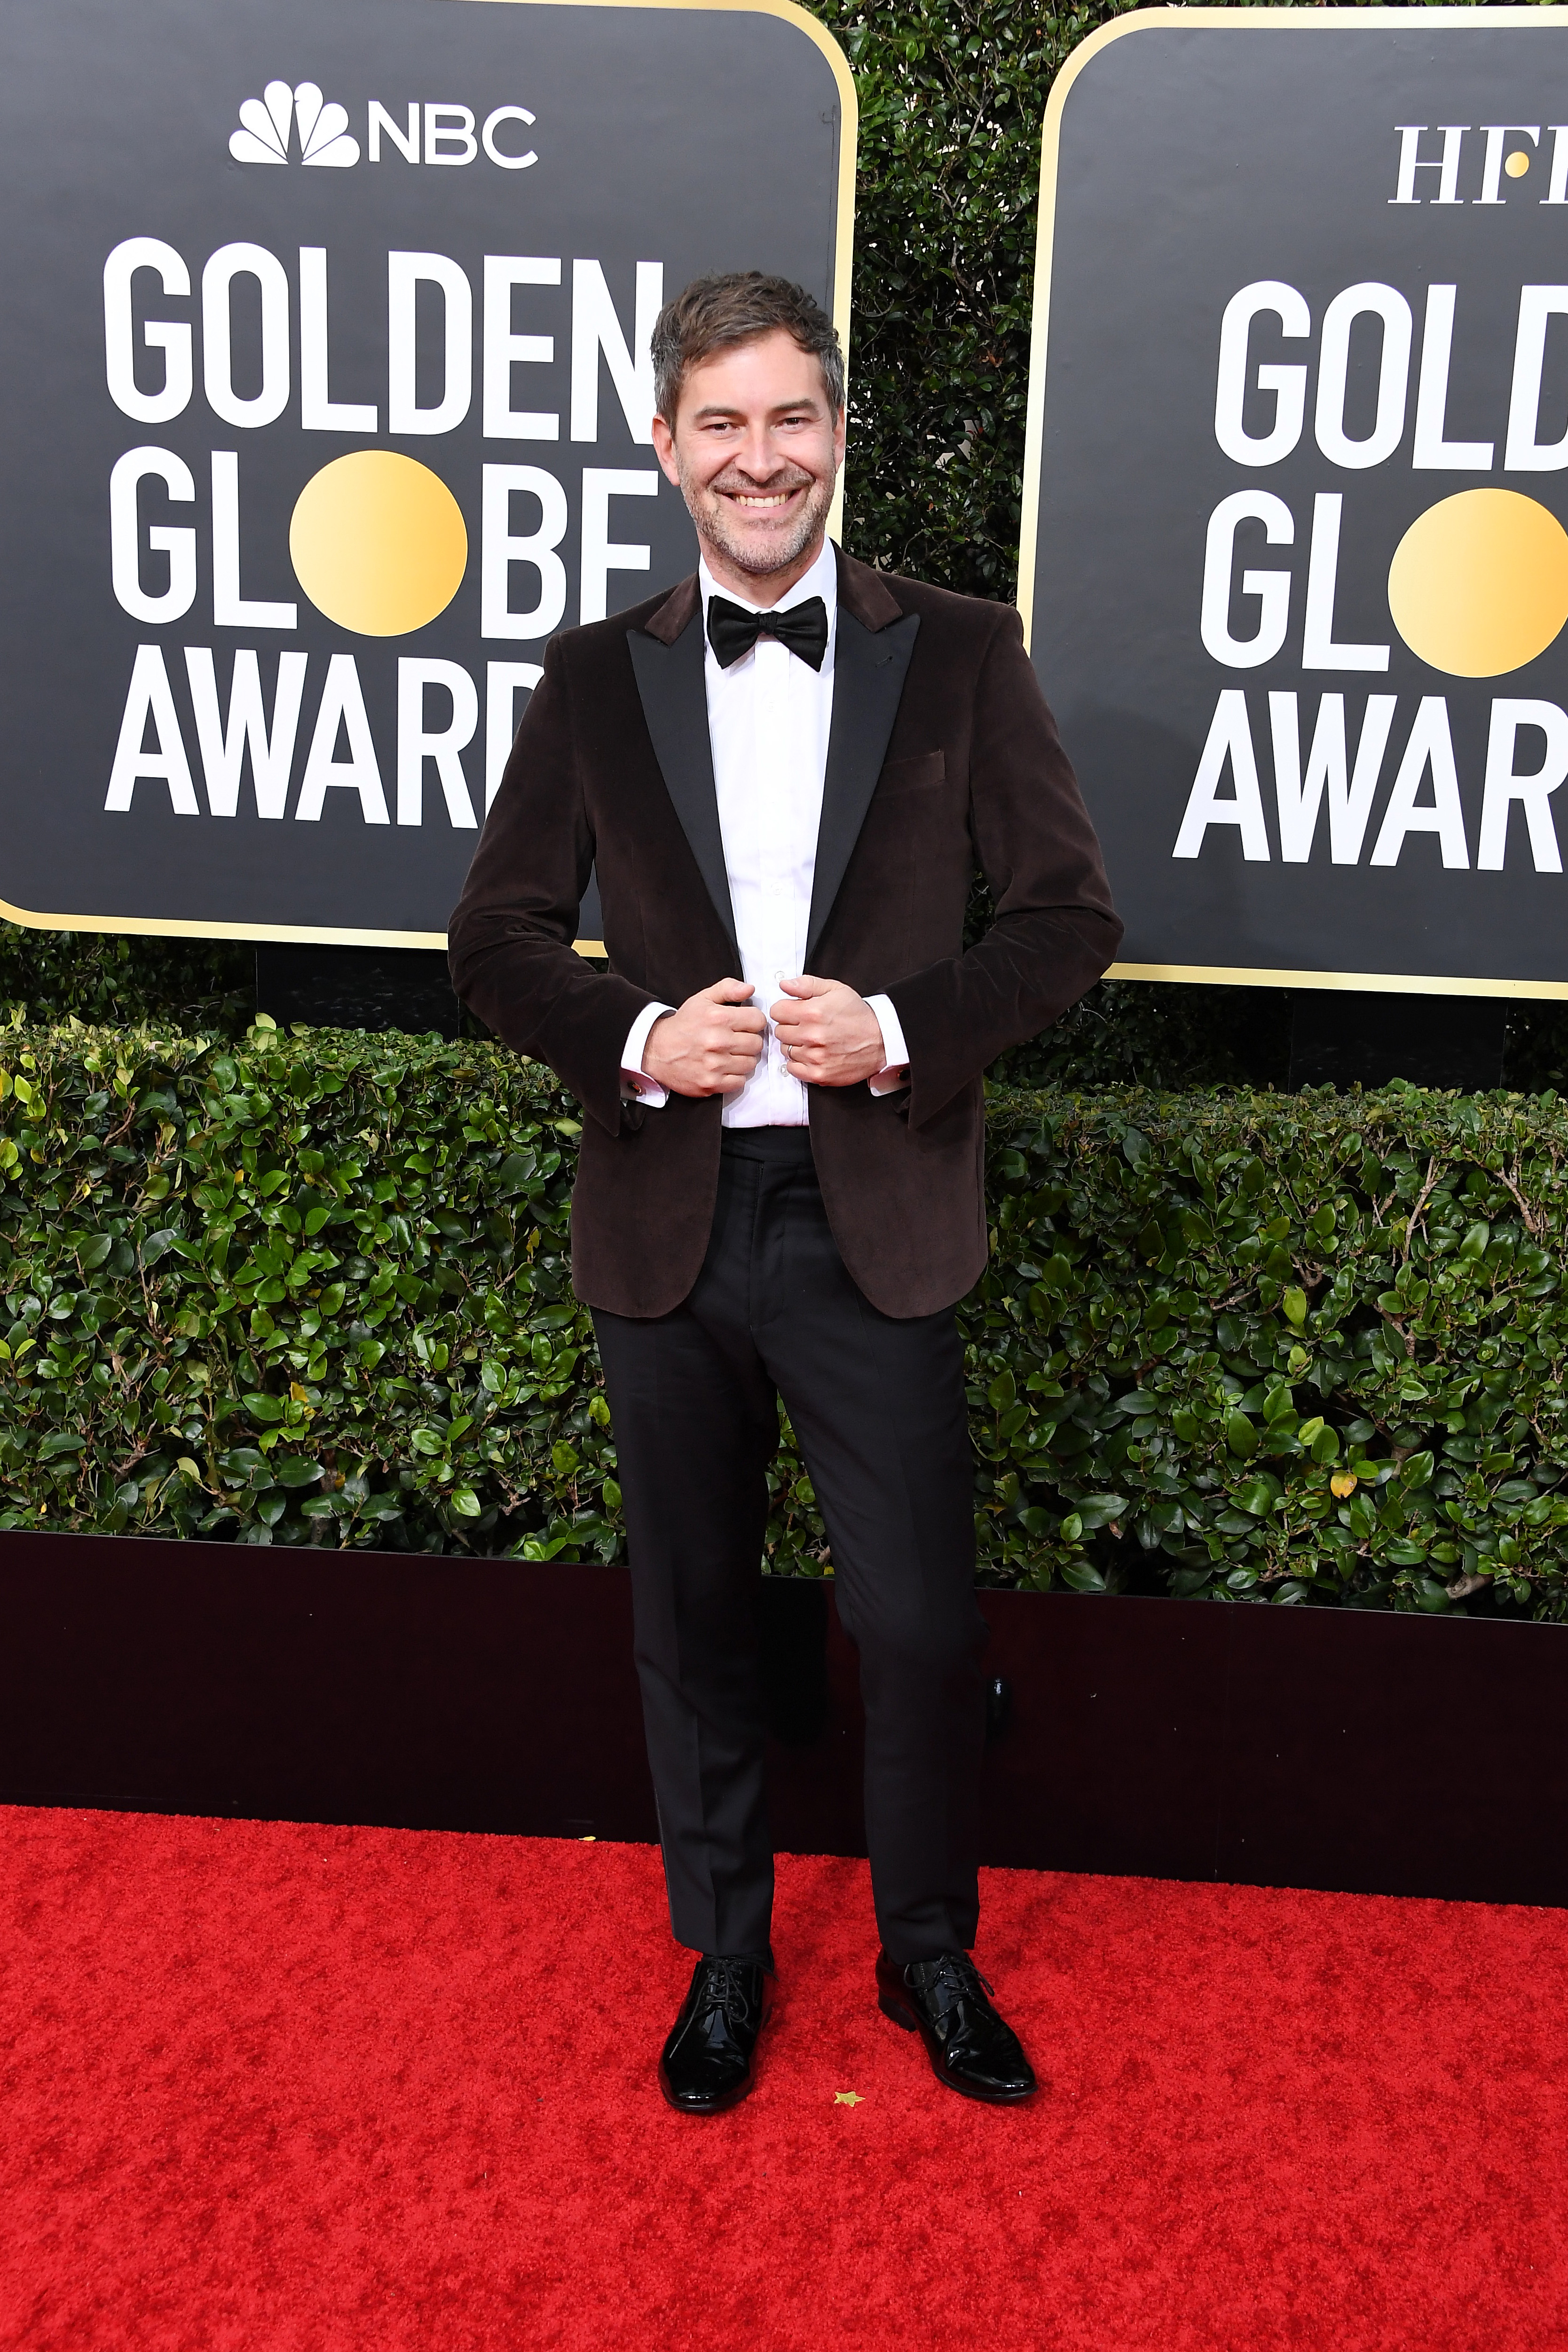 BEVERLY HILLS, CALIFORNIA - JANUARY 05: Mark Duplass attends the 77th Annual Golden Globe Awards at The Beverly Hilton Hotel on January 05, 2020 in Beverly Hills, California. (Photo by Steve Granitz/WireImage)